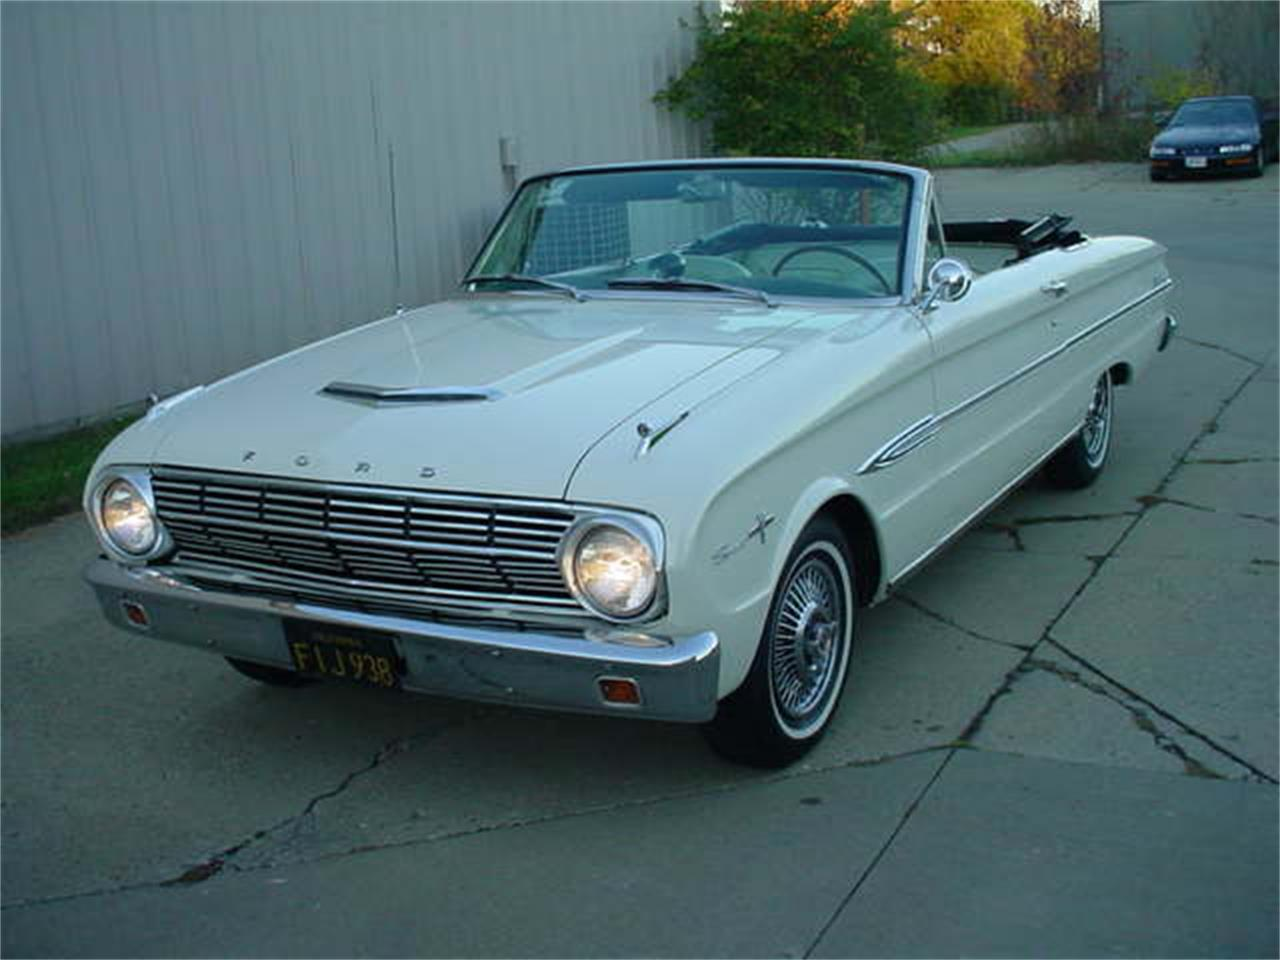 For Sale: 1963 Ford Falcon in Milford, Ohio